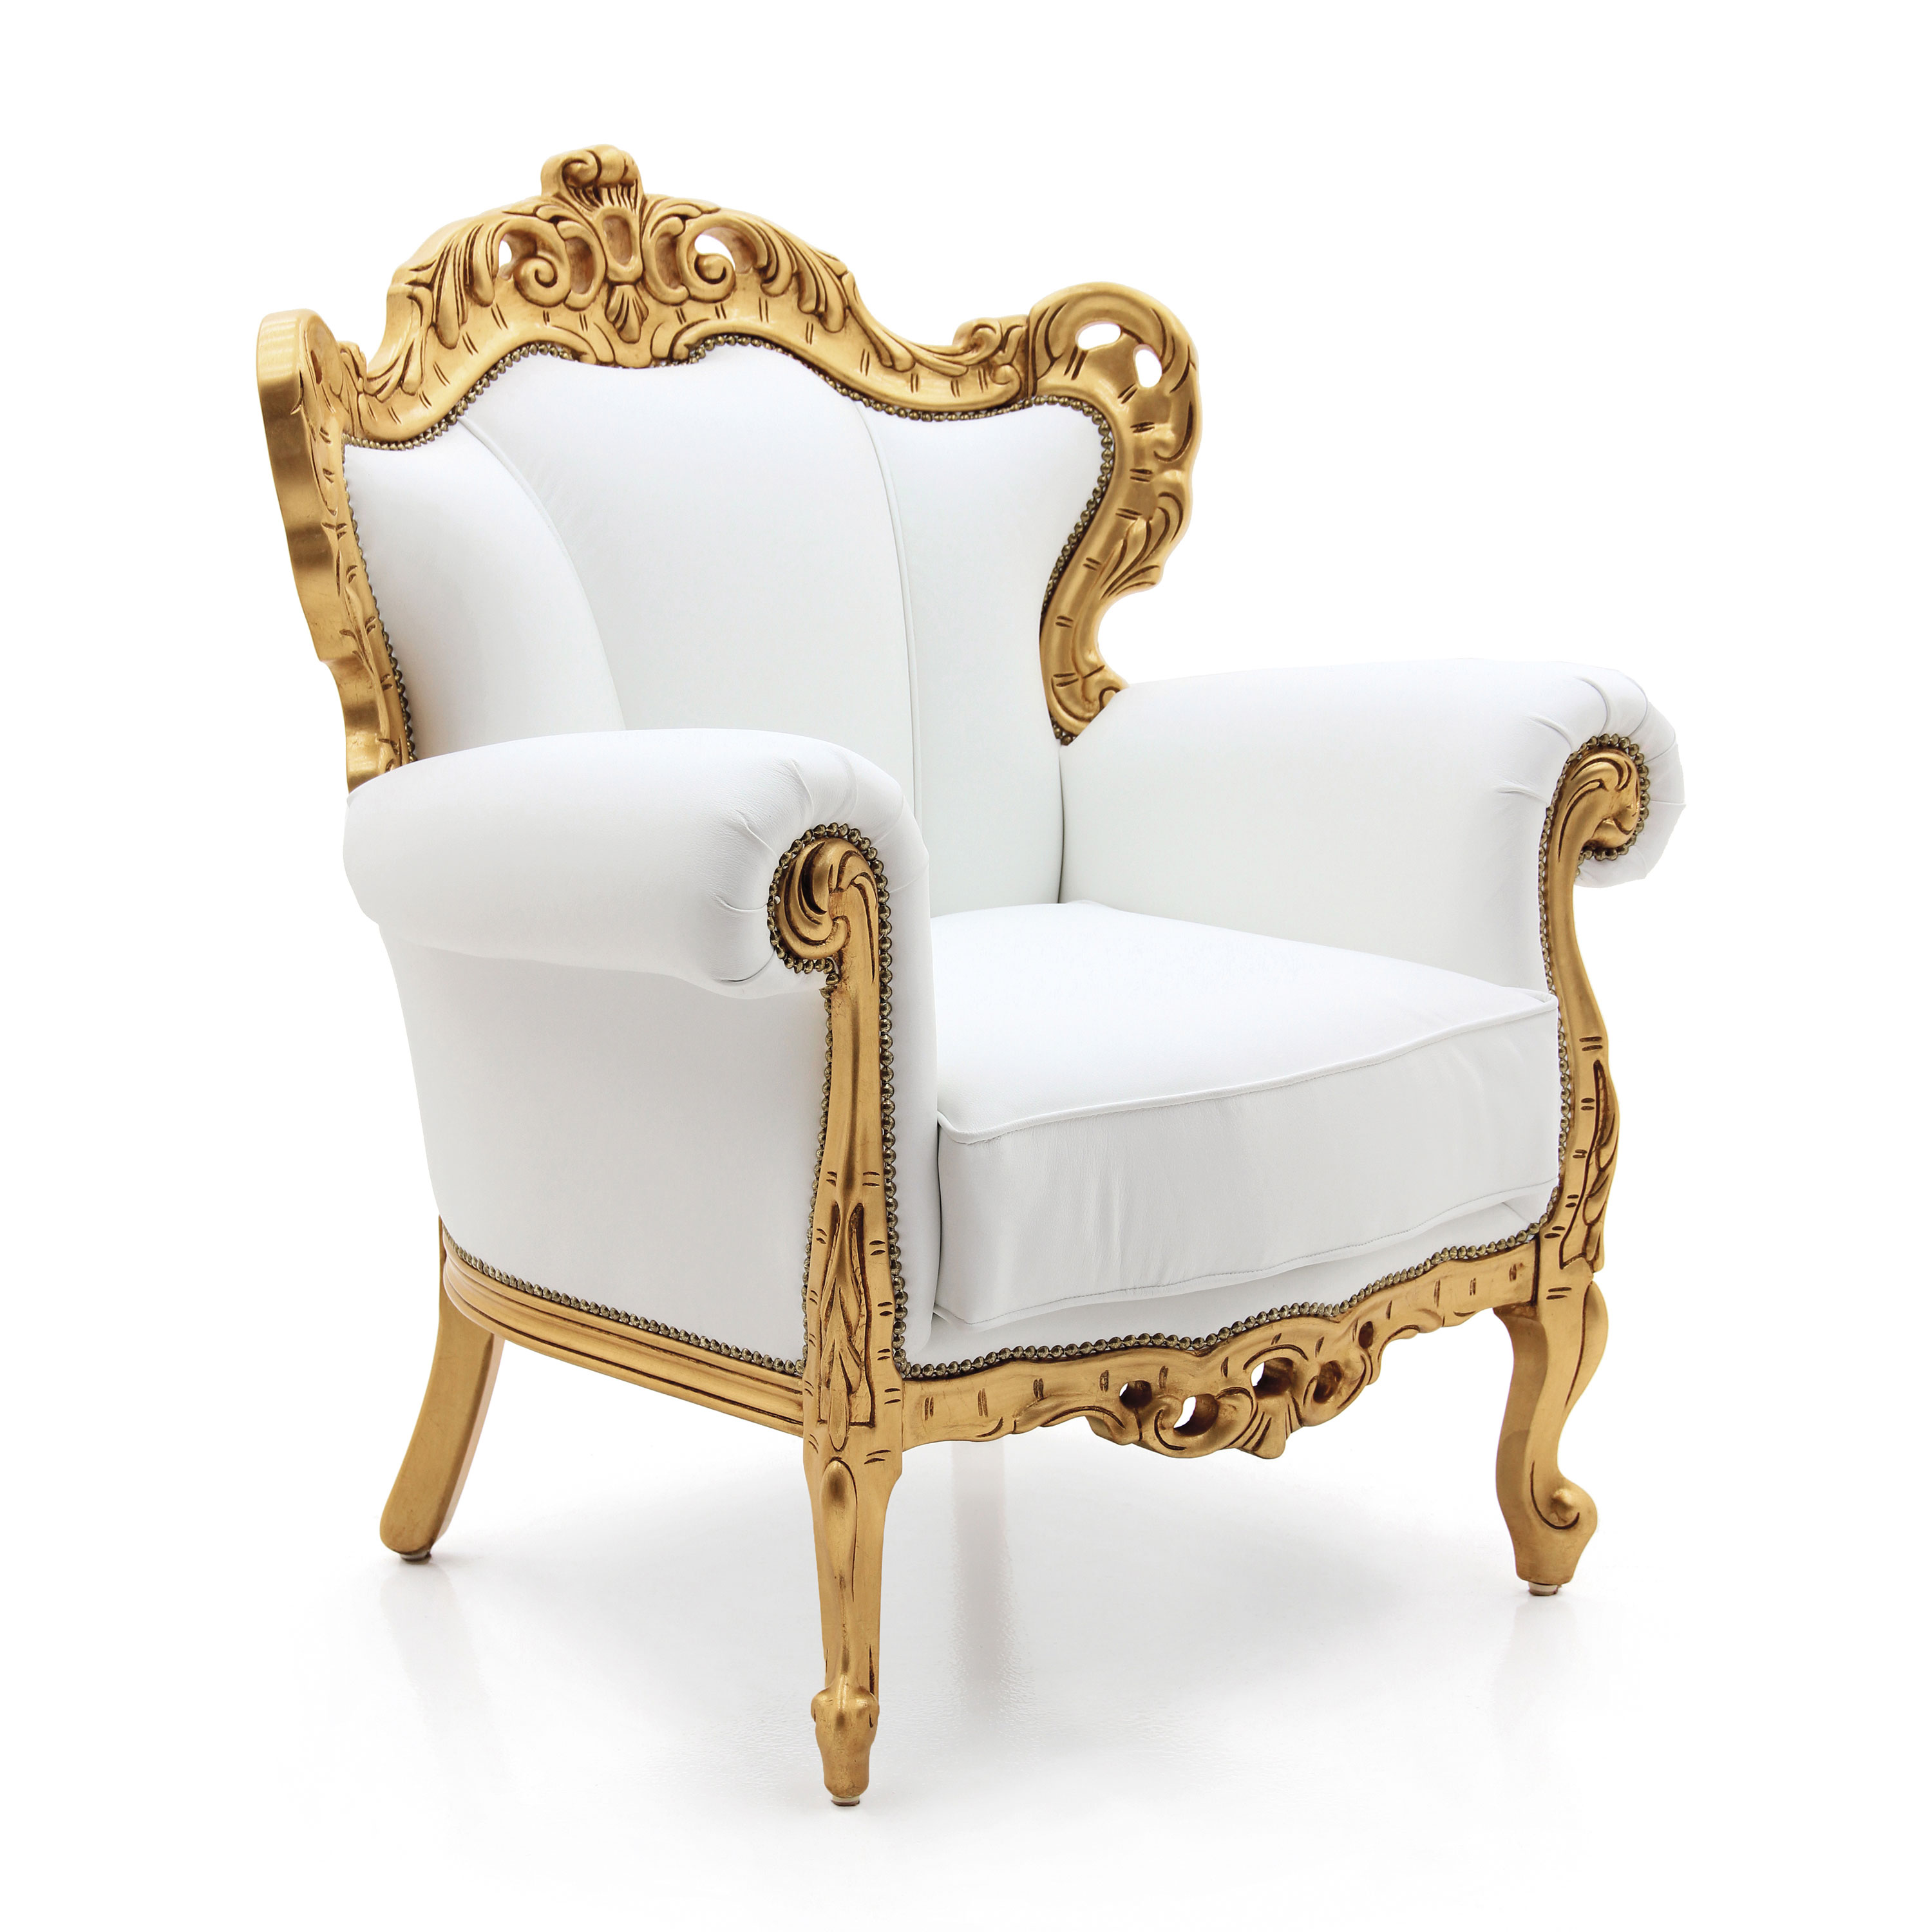 Ordinaire Baroque Style Wooden Armchair